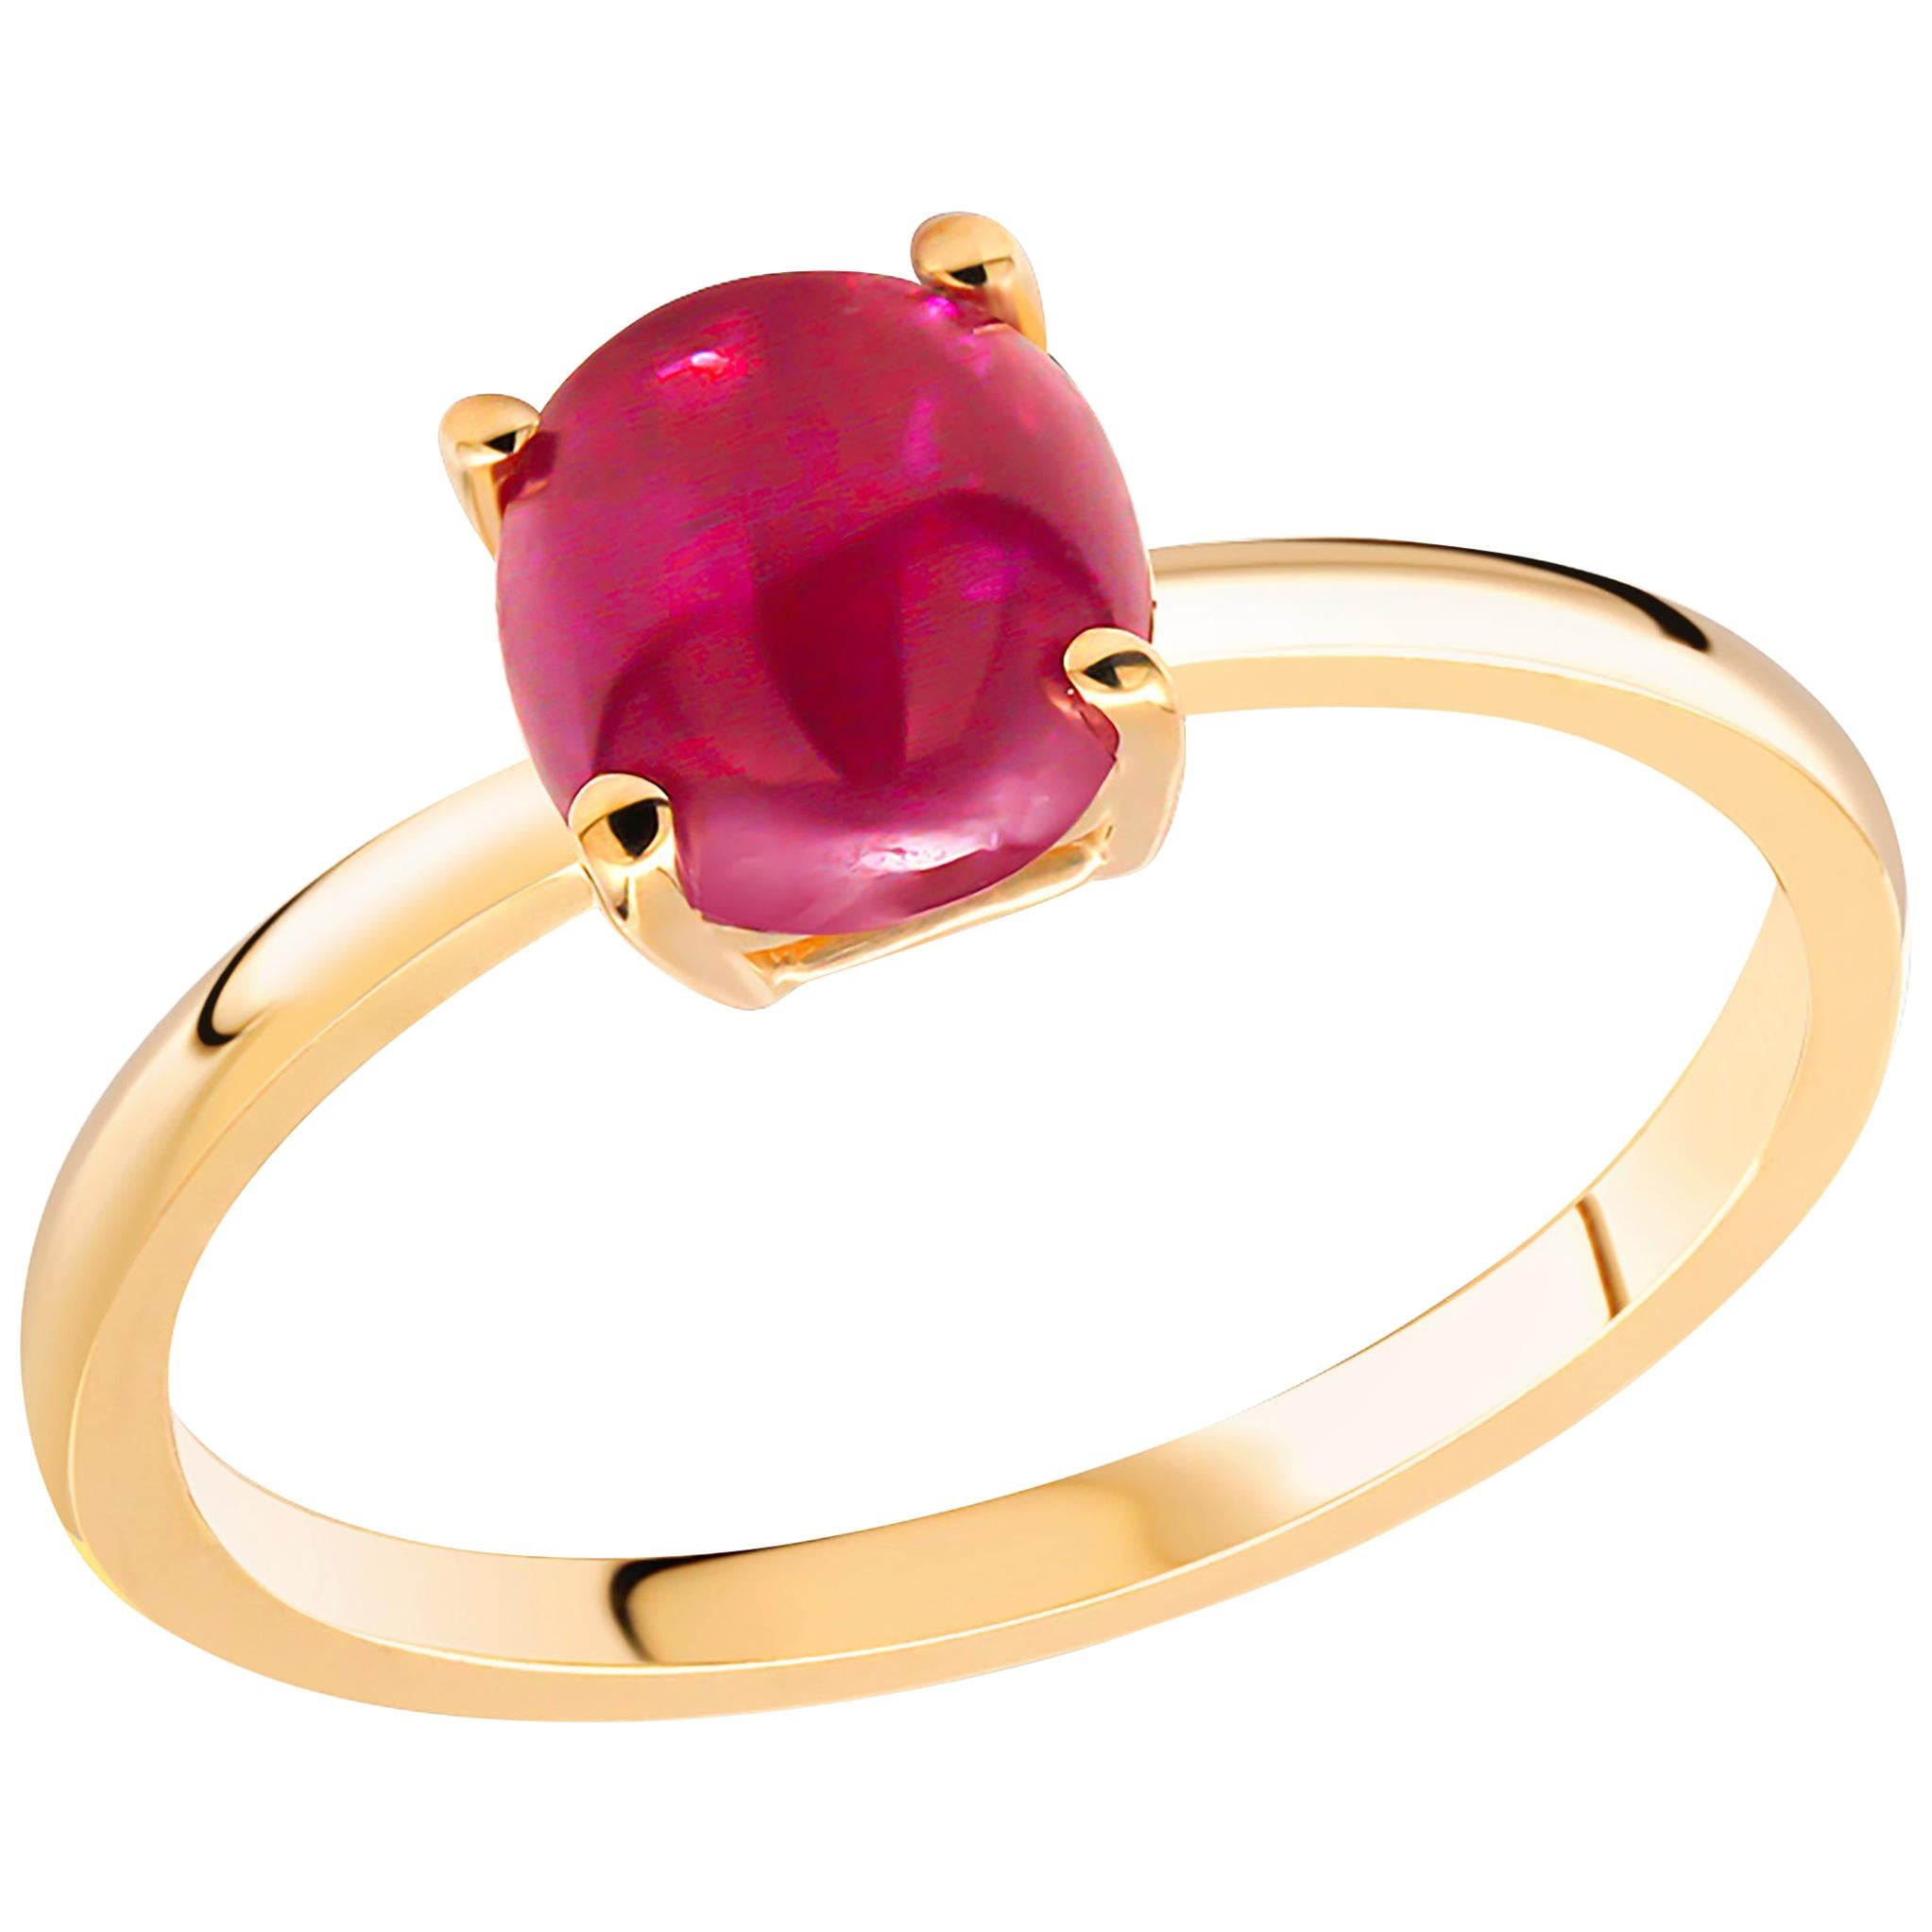 Cushion Shape Sugar Loaf Burma Cabochon Ruby Yellow and White Gold Cocktail Ring